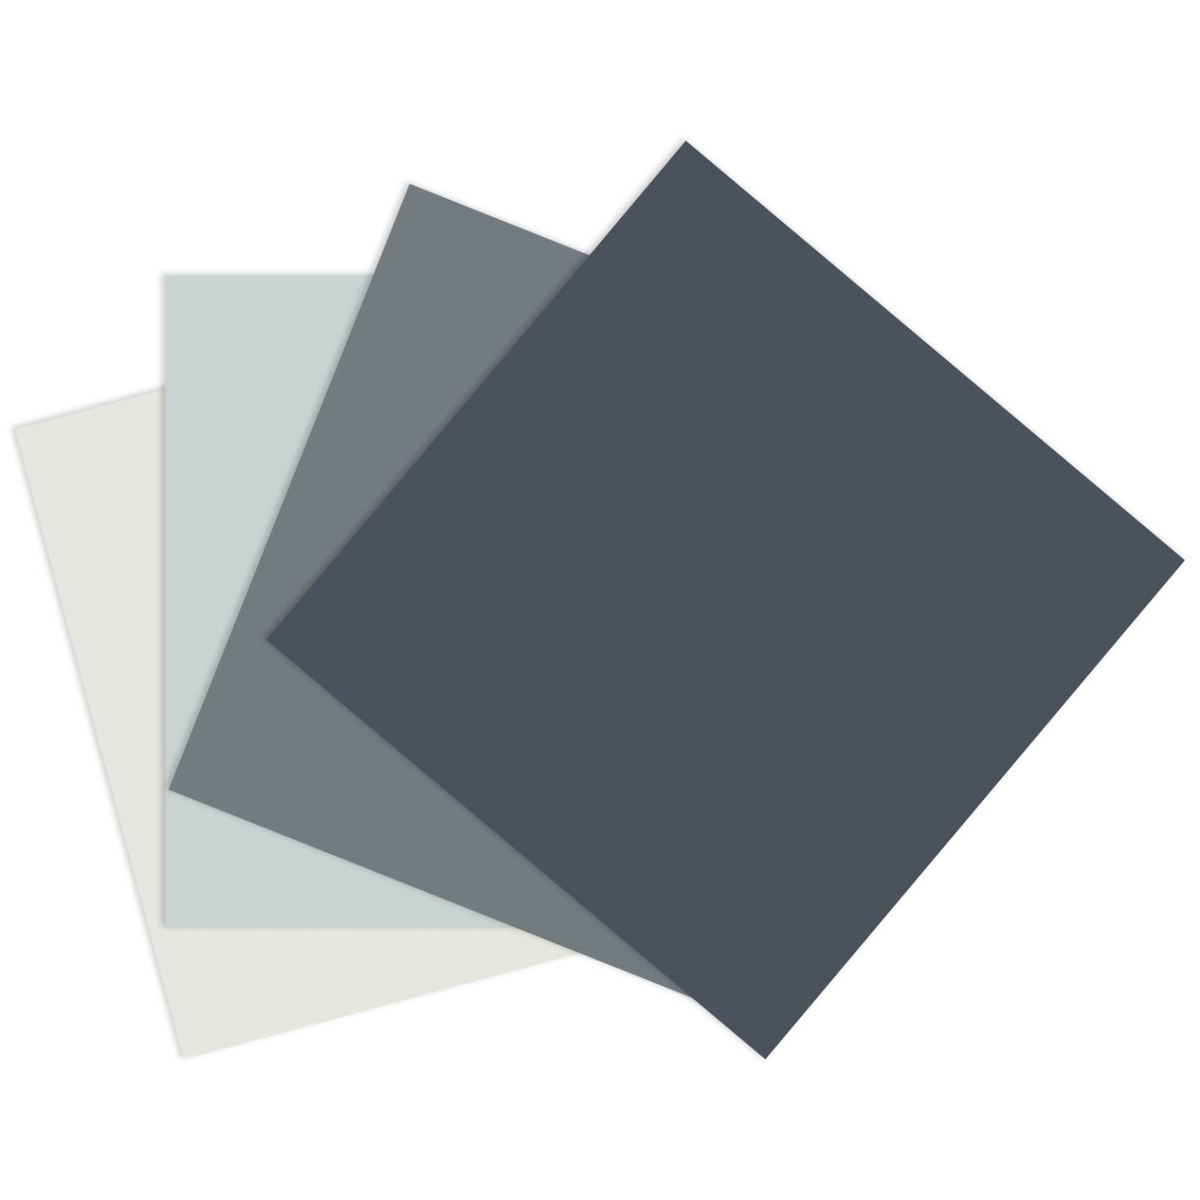 Cardstock Carnival #ctmh #closetomyheart #cardstock #exclusivecolorpalette #exclusivecolourpalatte #ctmhcolors #cmthcolours #grey #gray #neutrals #linen #pebble #pewter #charcoal